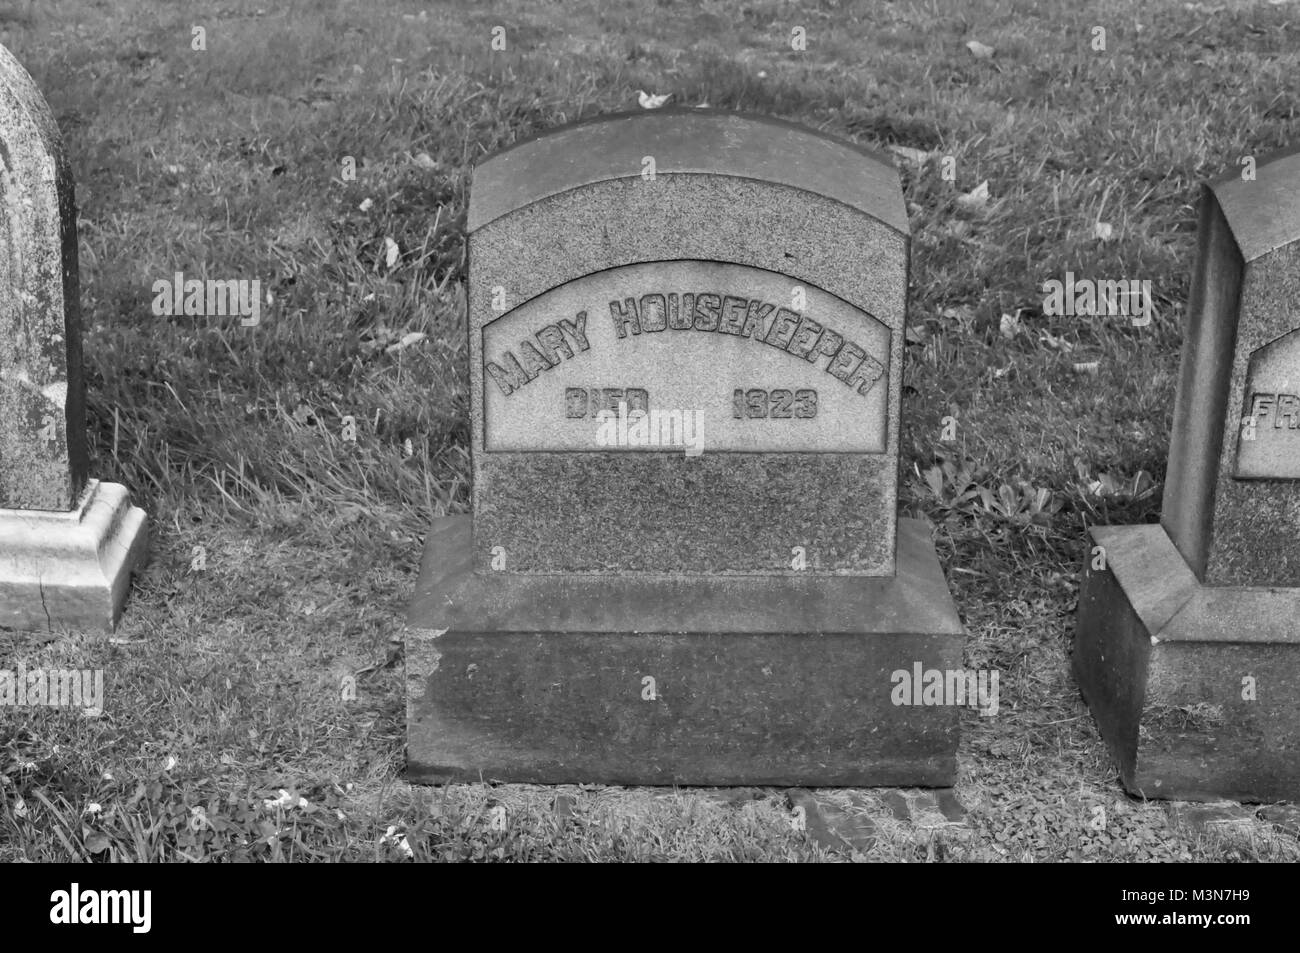 Gravestone for Mary Housekeeper in a Cemetery Stock Photo